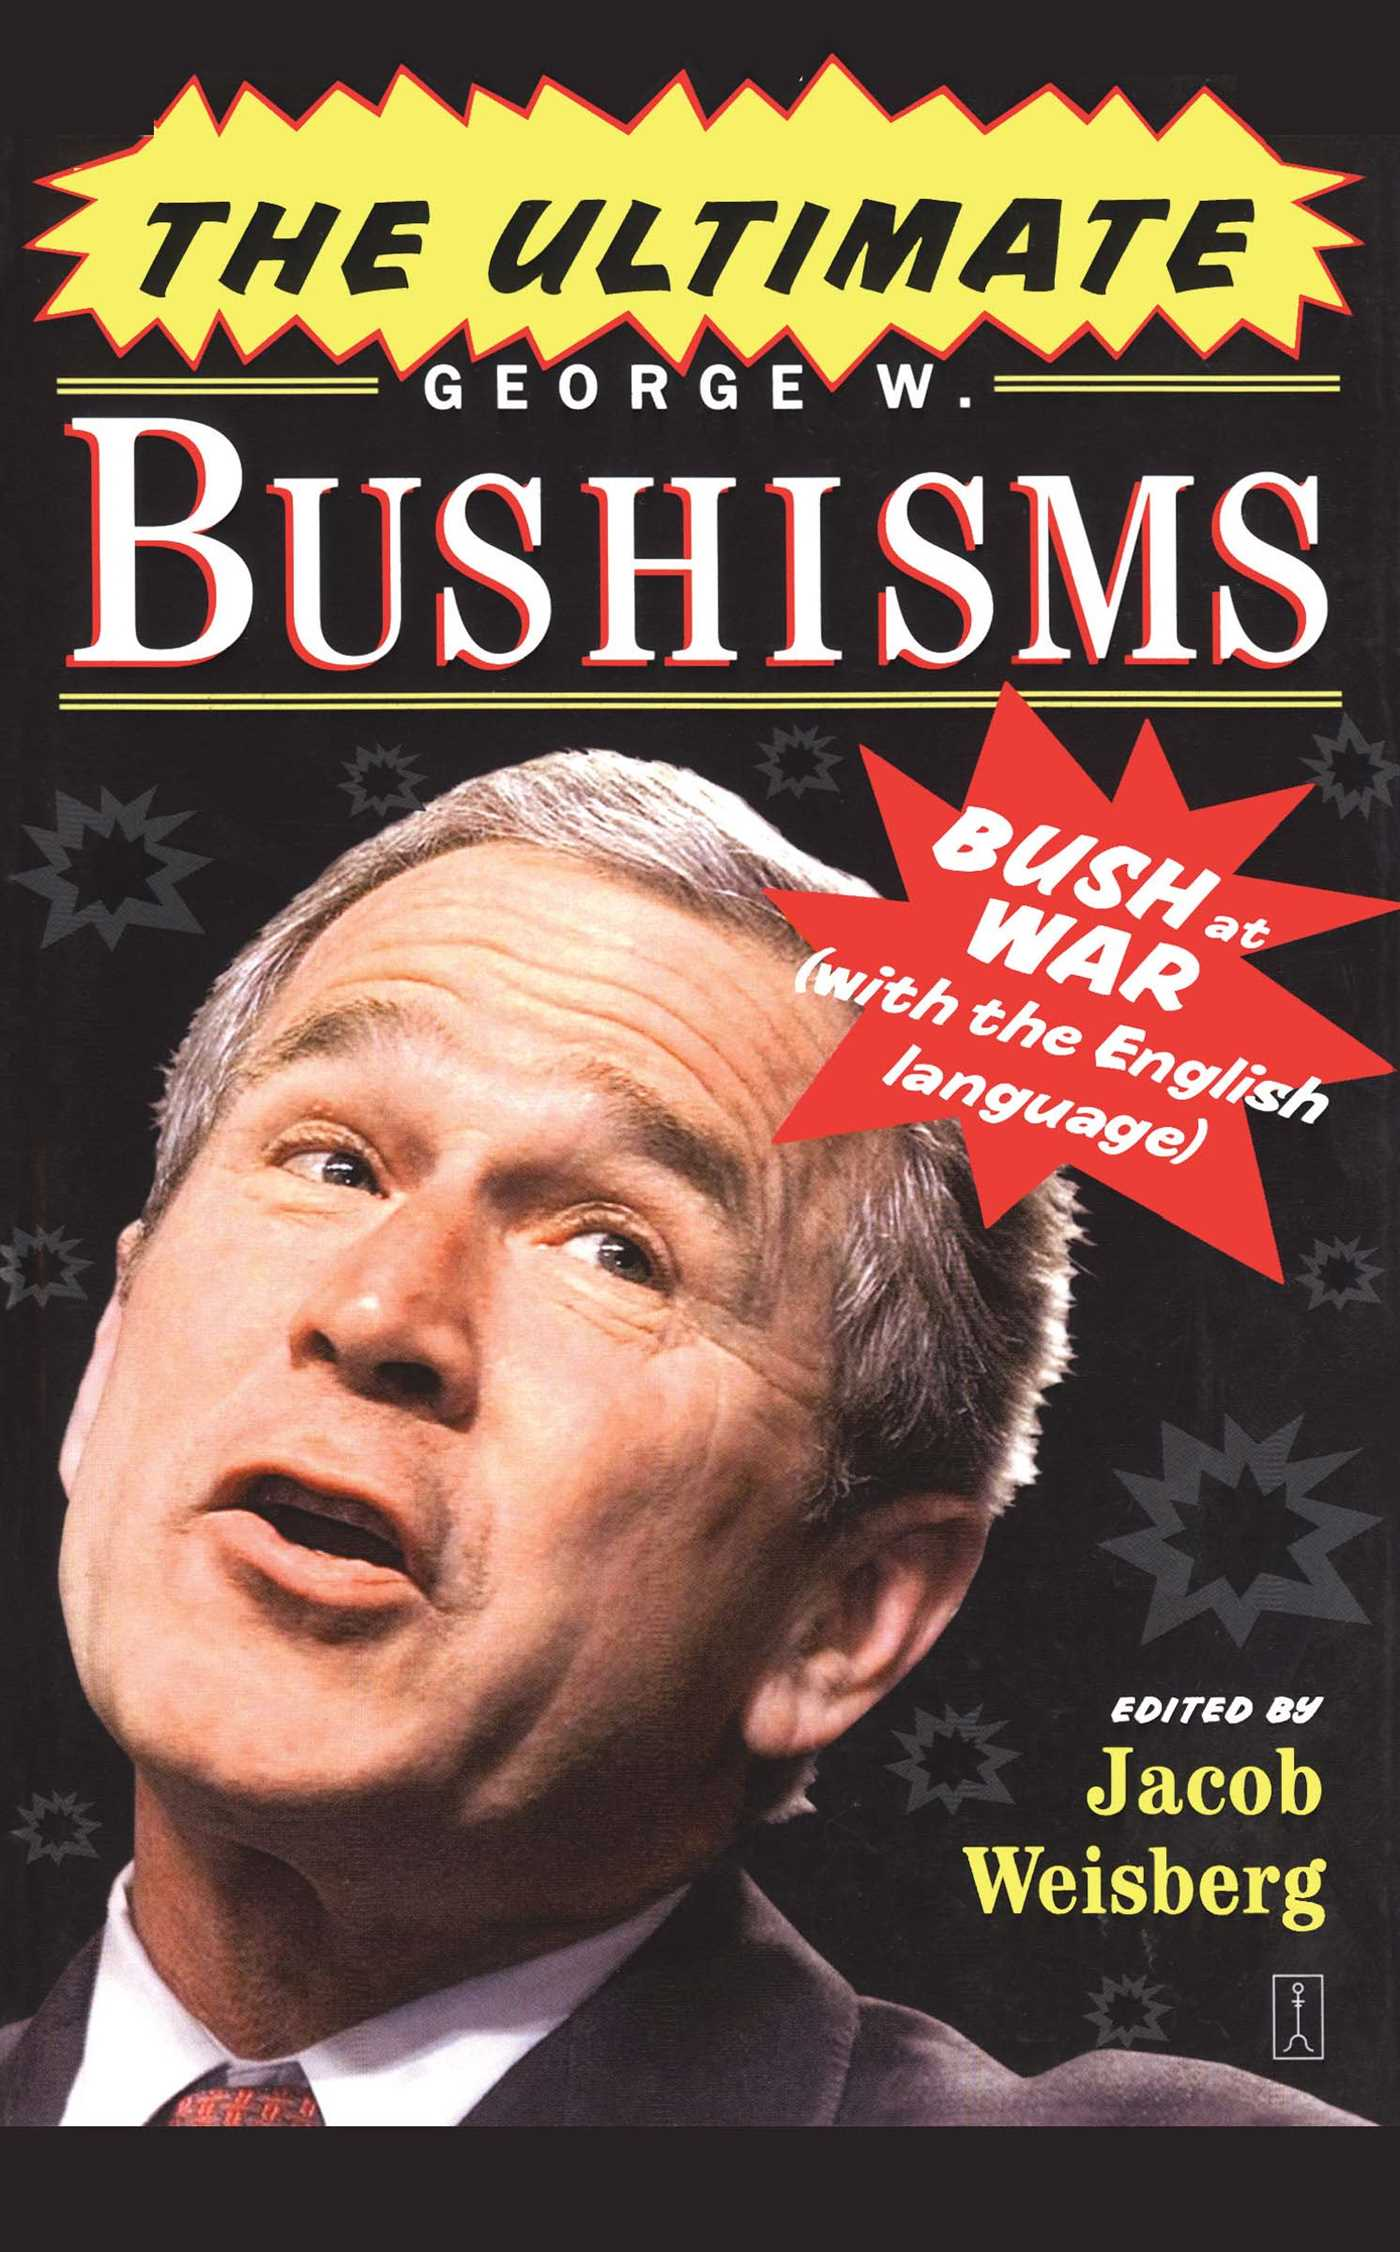 The-ultimate-george-w-bushisms-9781416550587_hr